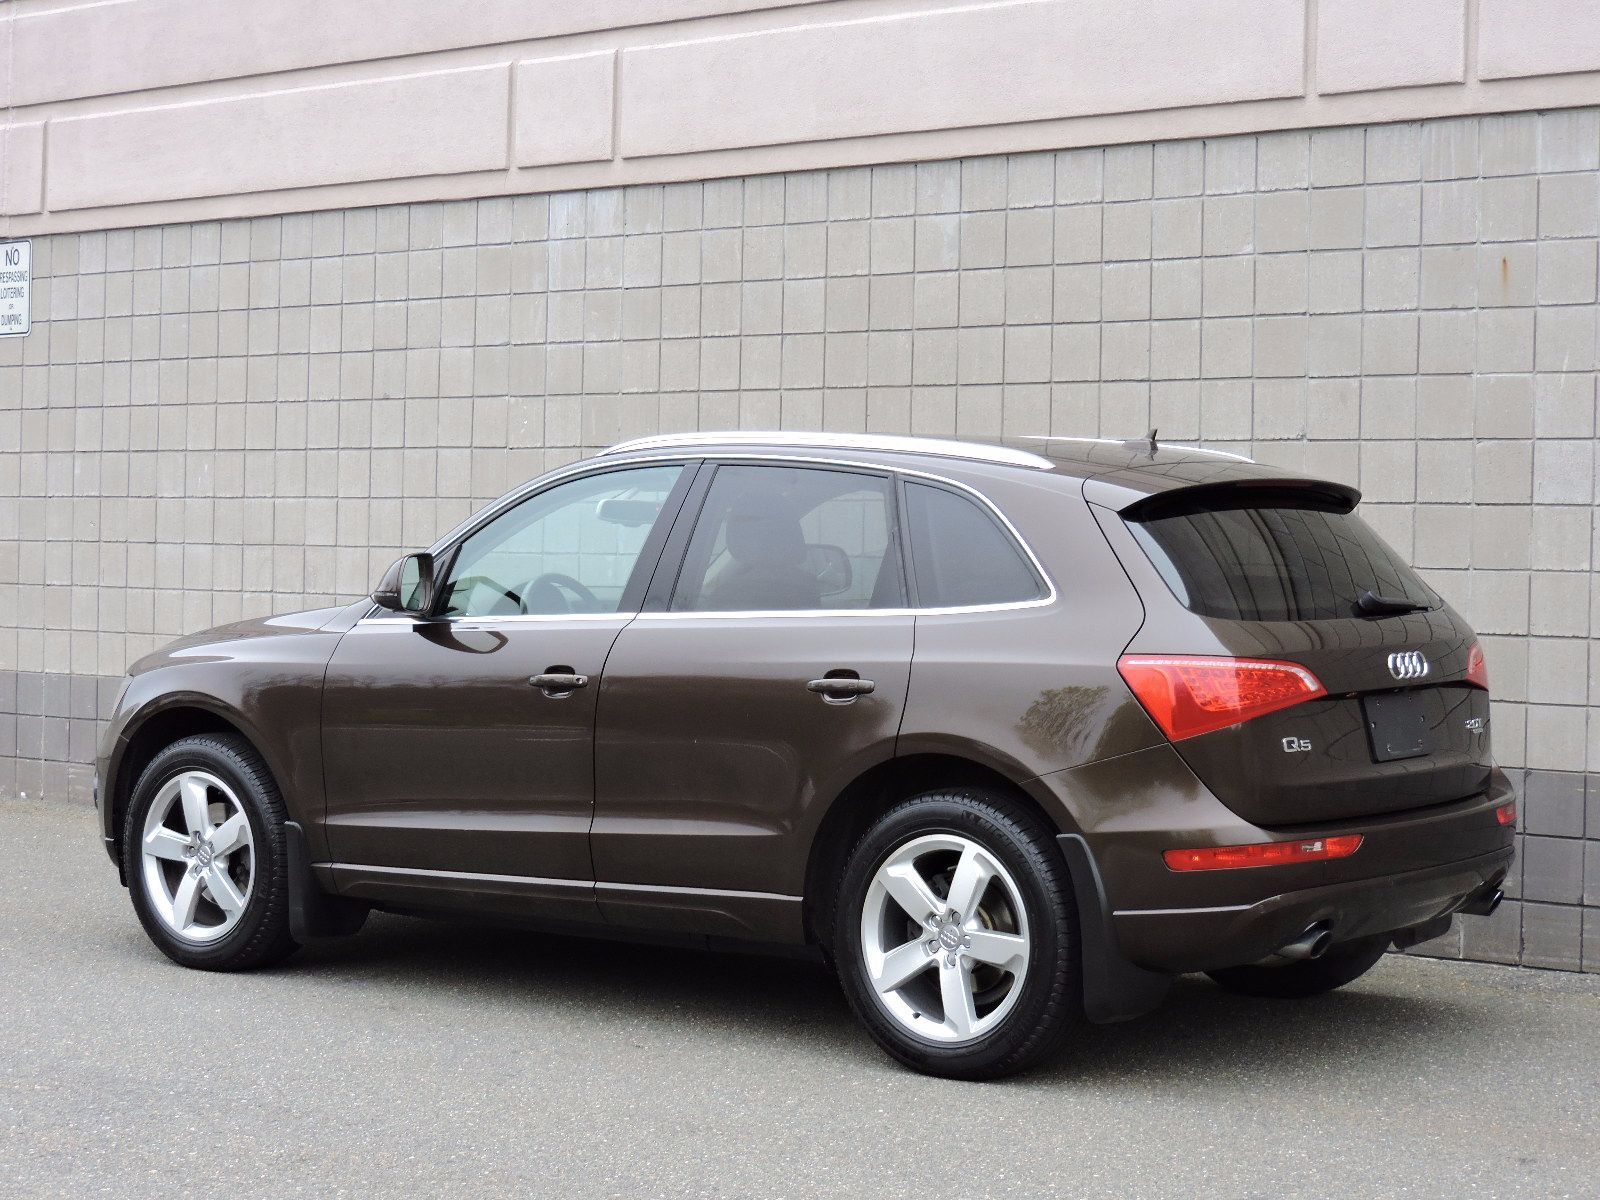 2012 audi q5 2 0t quattro all wheel drive navigation